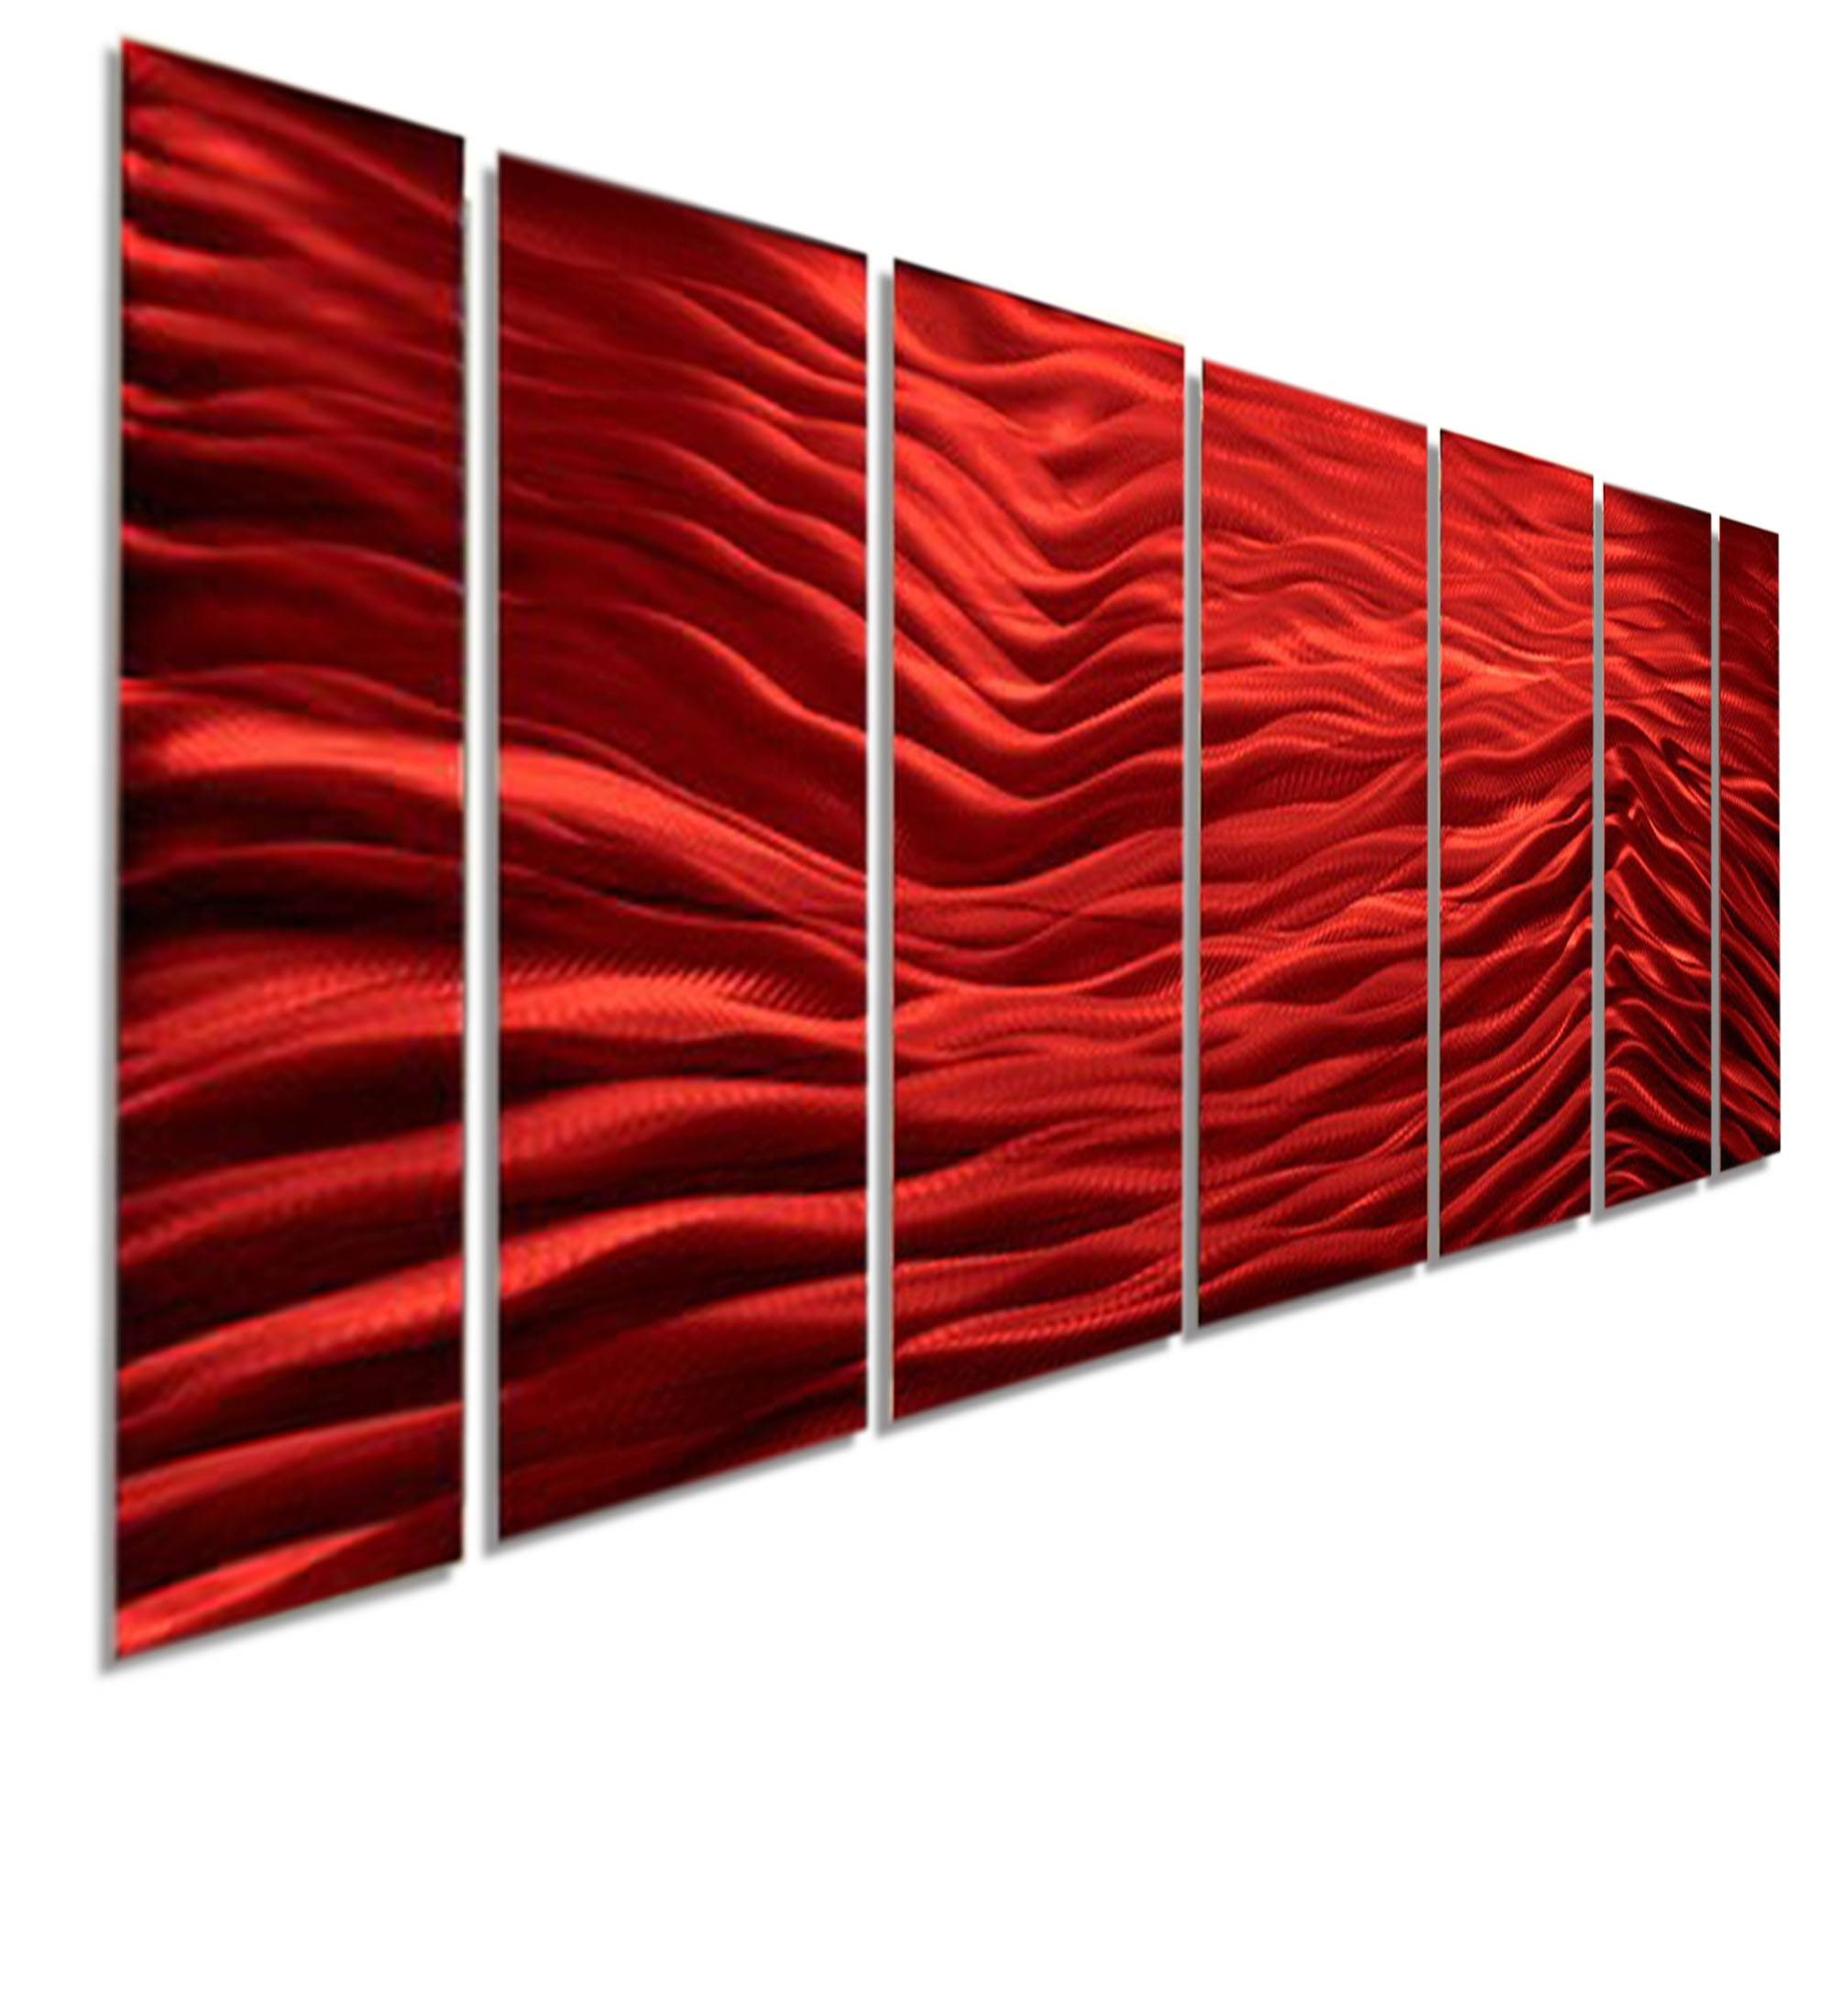 Red Wave Ii Contemporary Metal Wall Sculptureartist Jon Allen Within Most Popular Large Abstract Metal Wall Art (View 17 of 20)